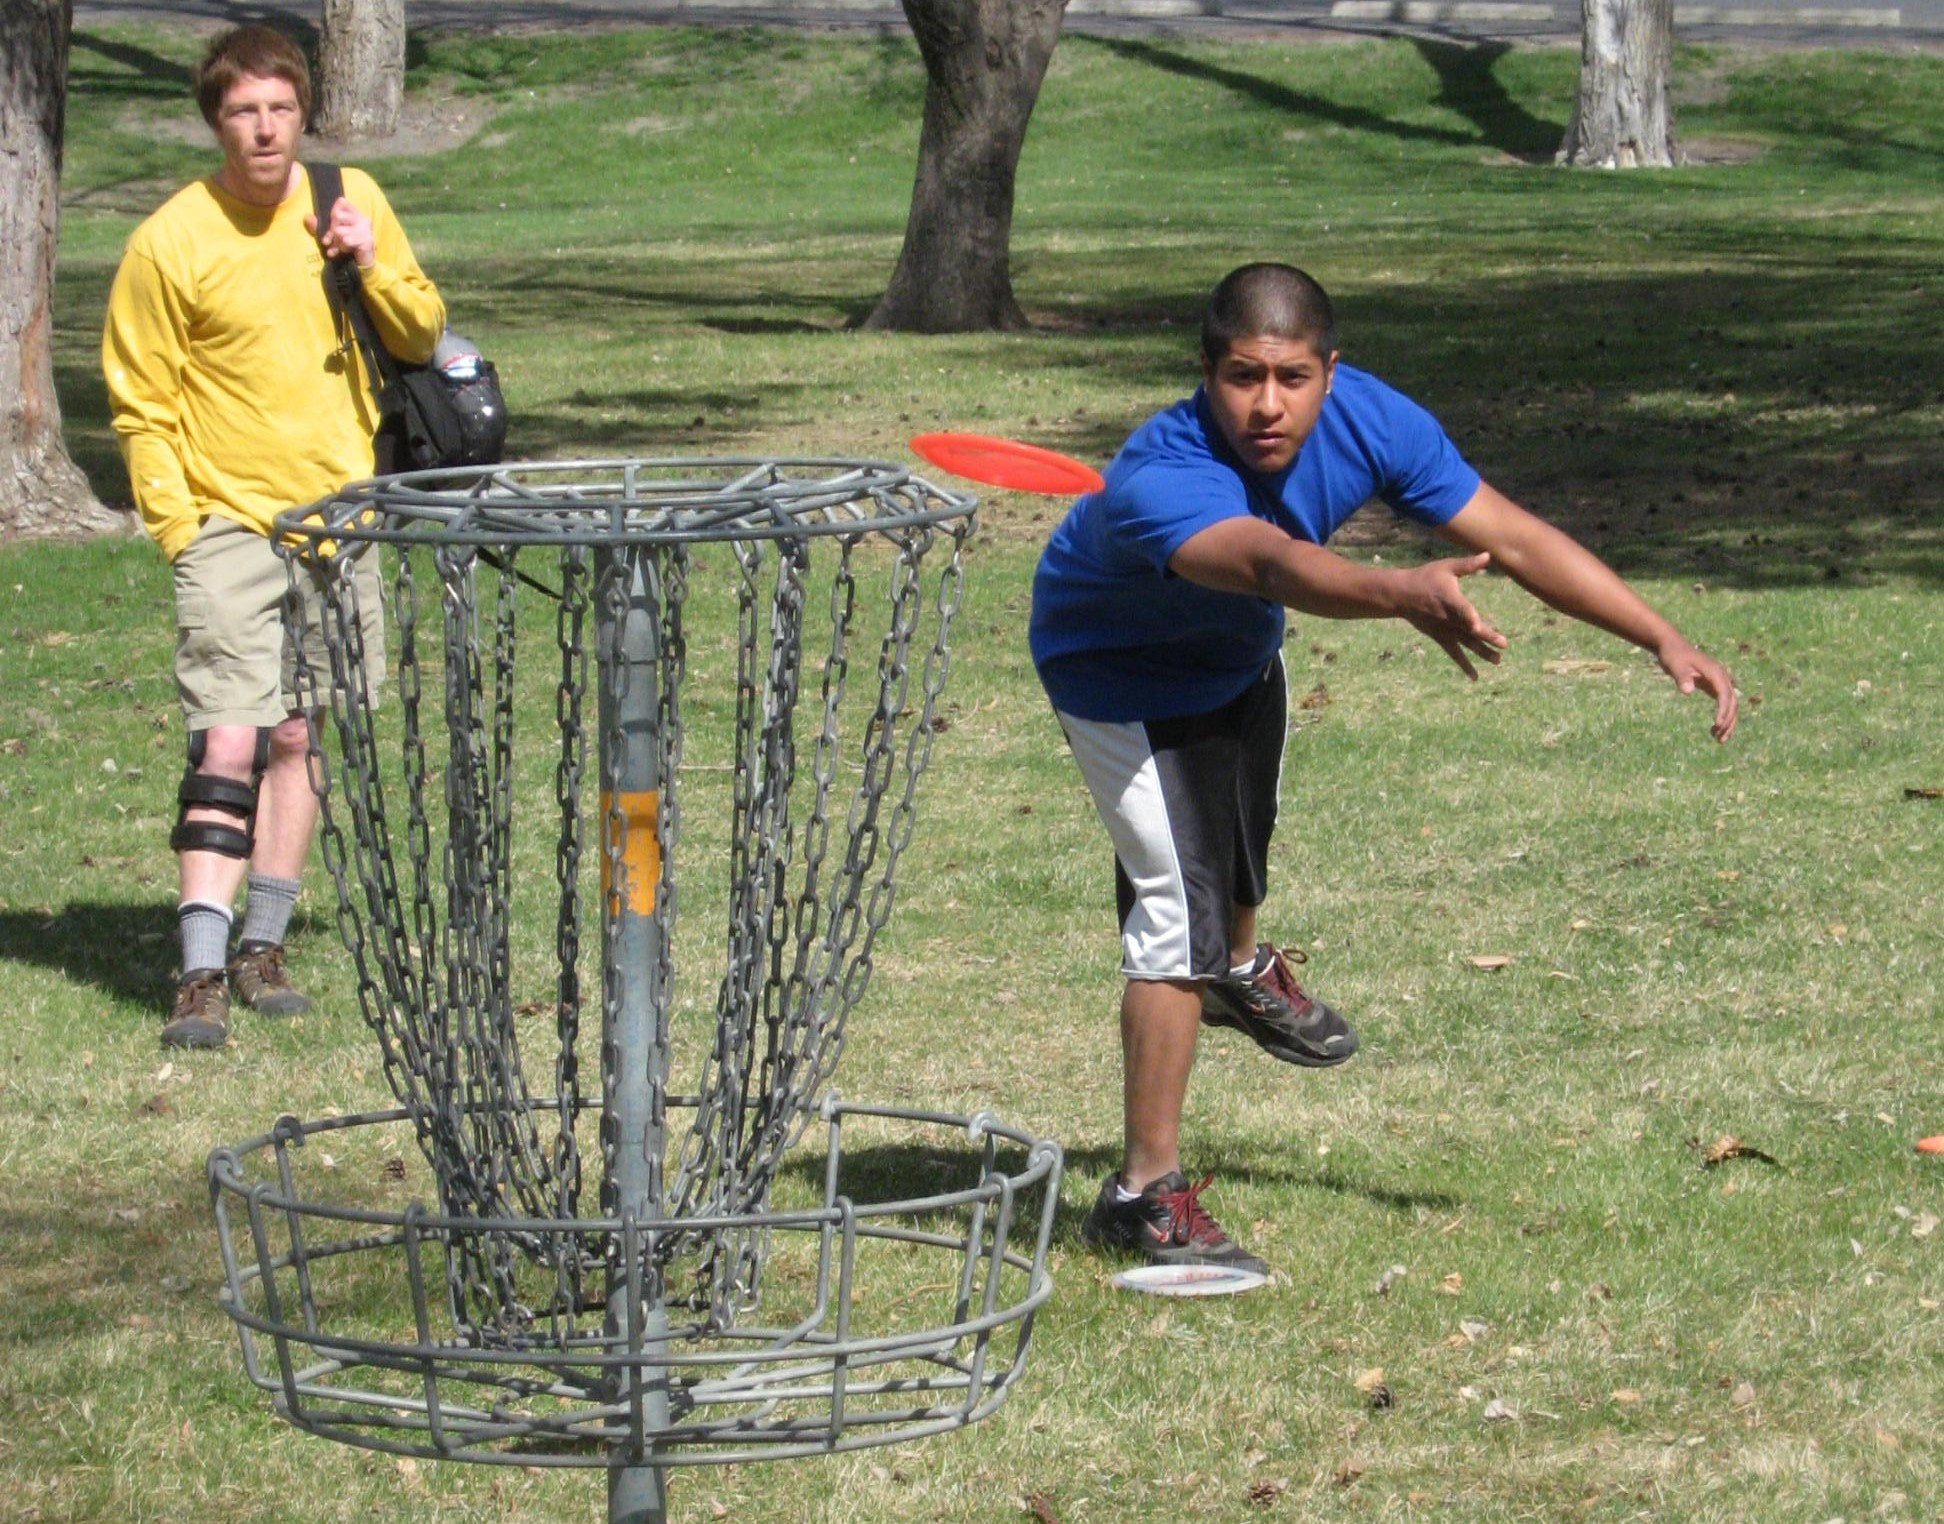 Disc golf goal and players